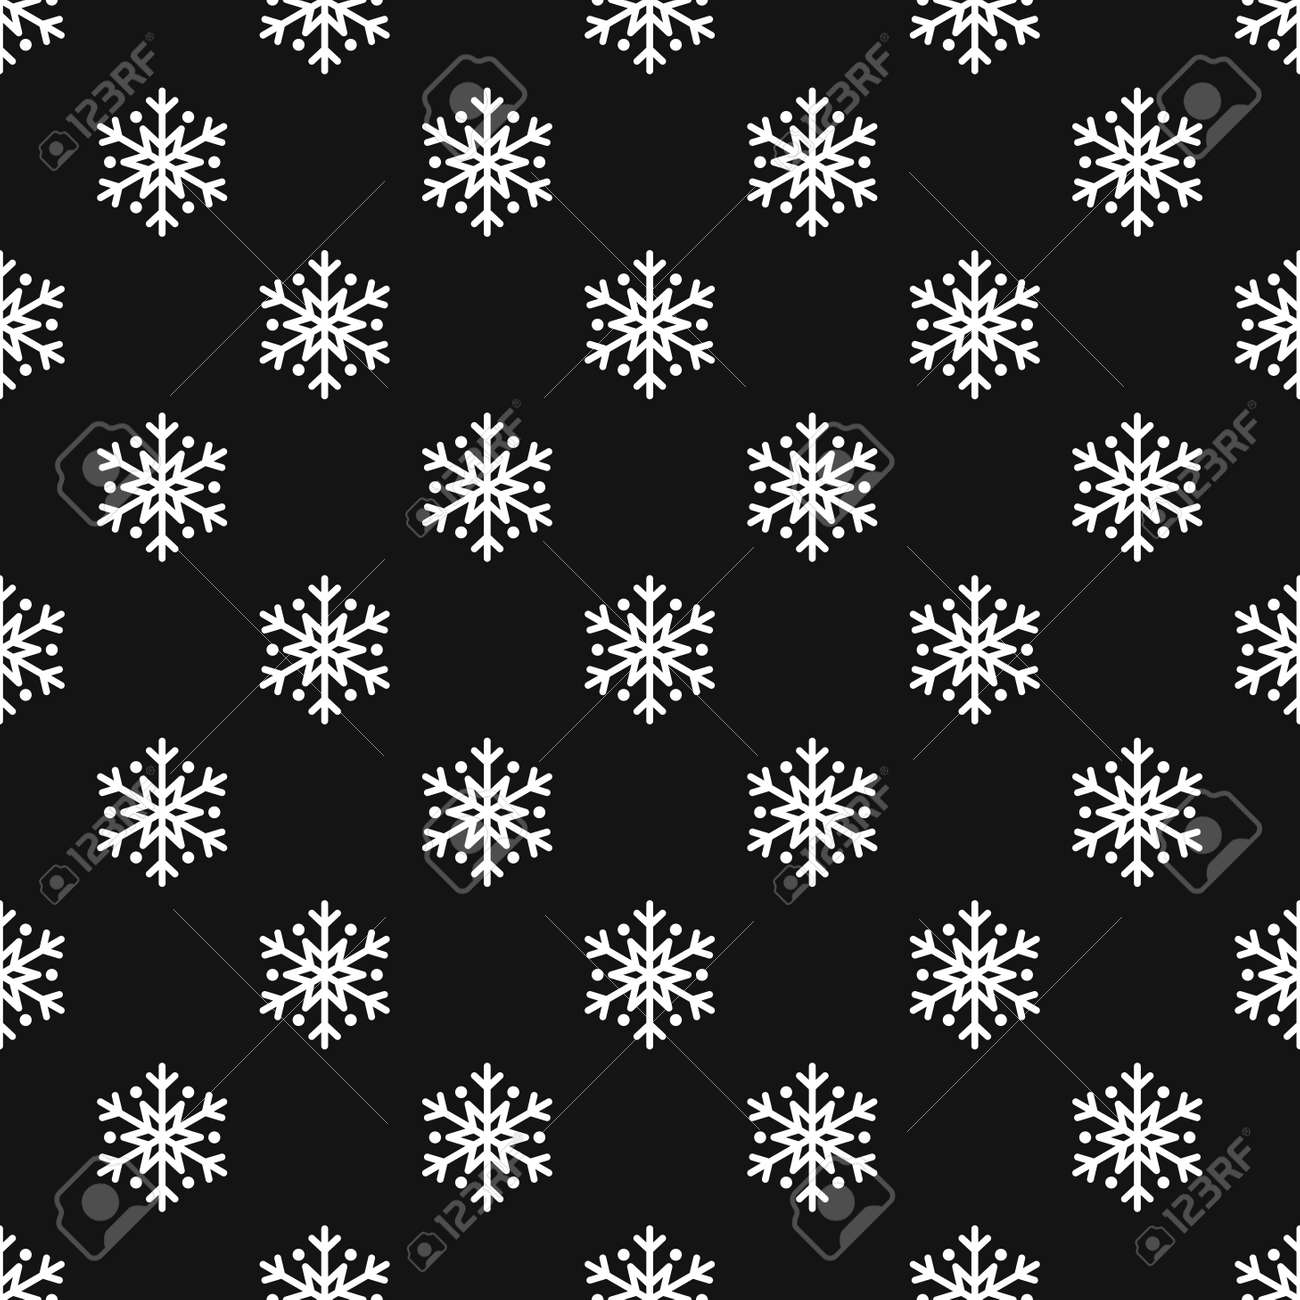 Snowflake Simple Seamless Pattern White Snow On Black Background Royalty Free Cliparts Vectors And Stock Illustration Image 66902952